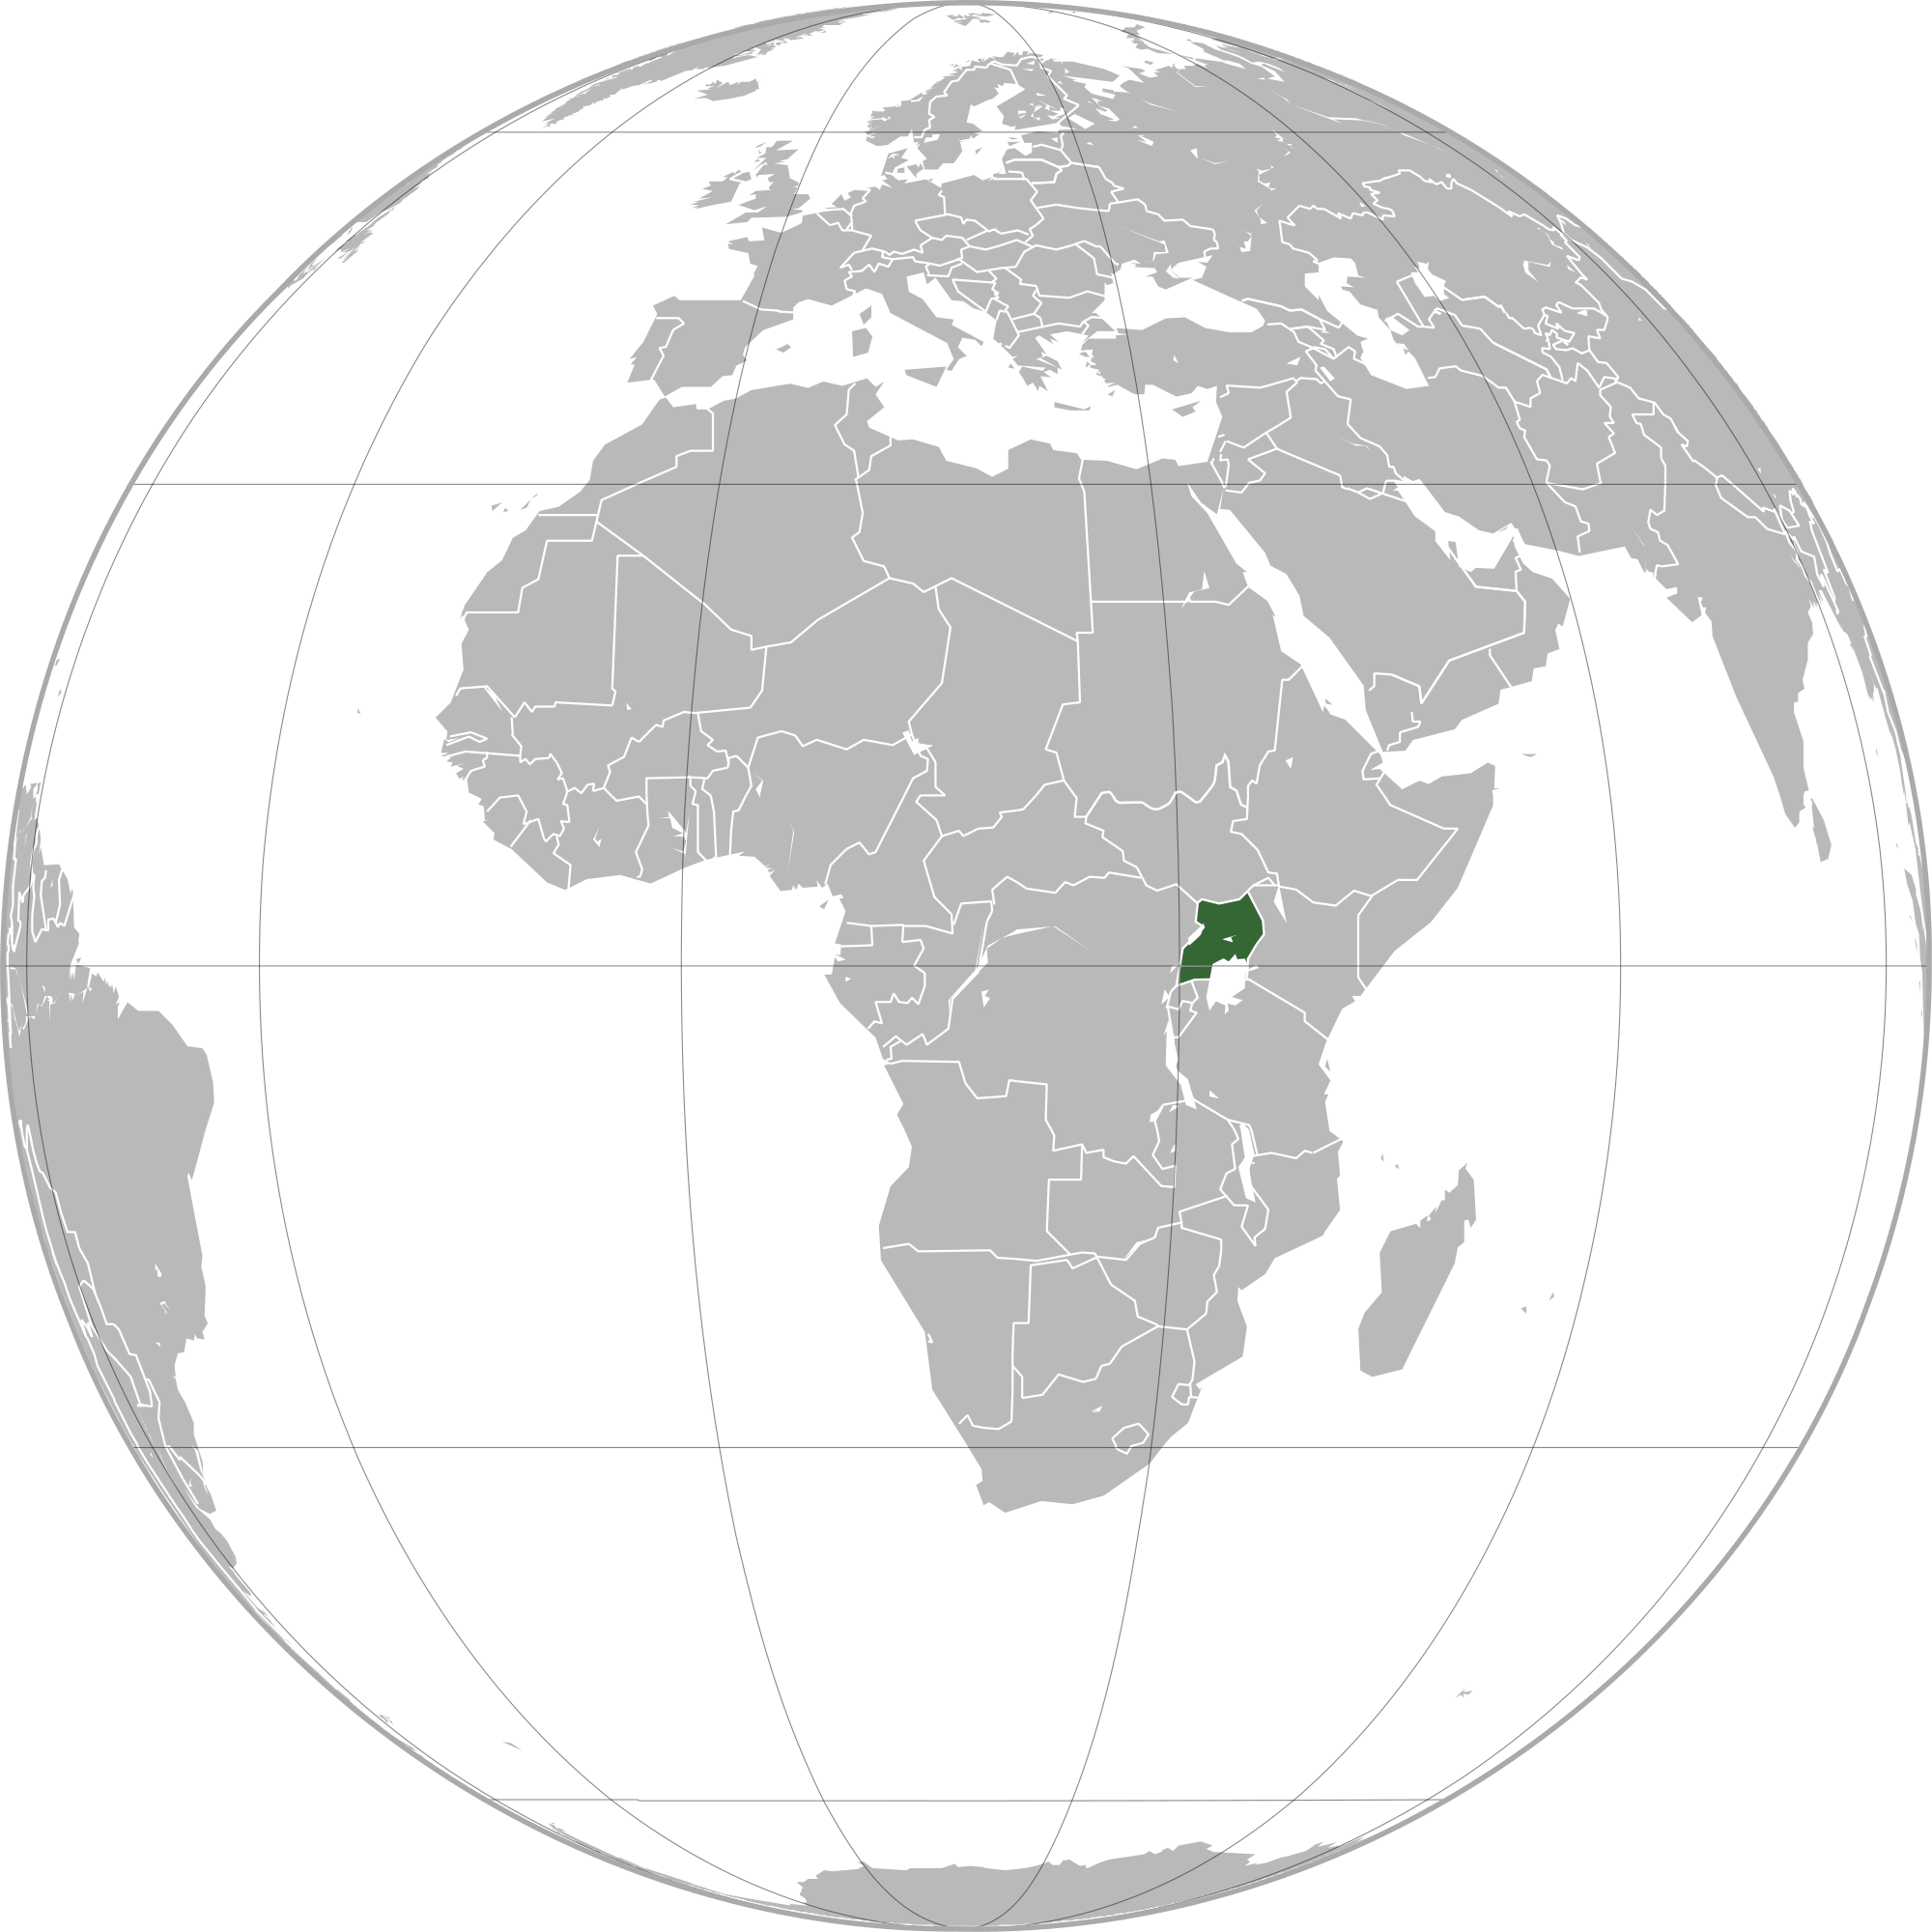 Location of the Uganda in the World Map